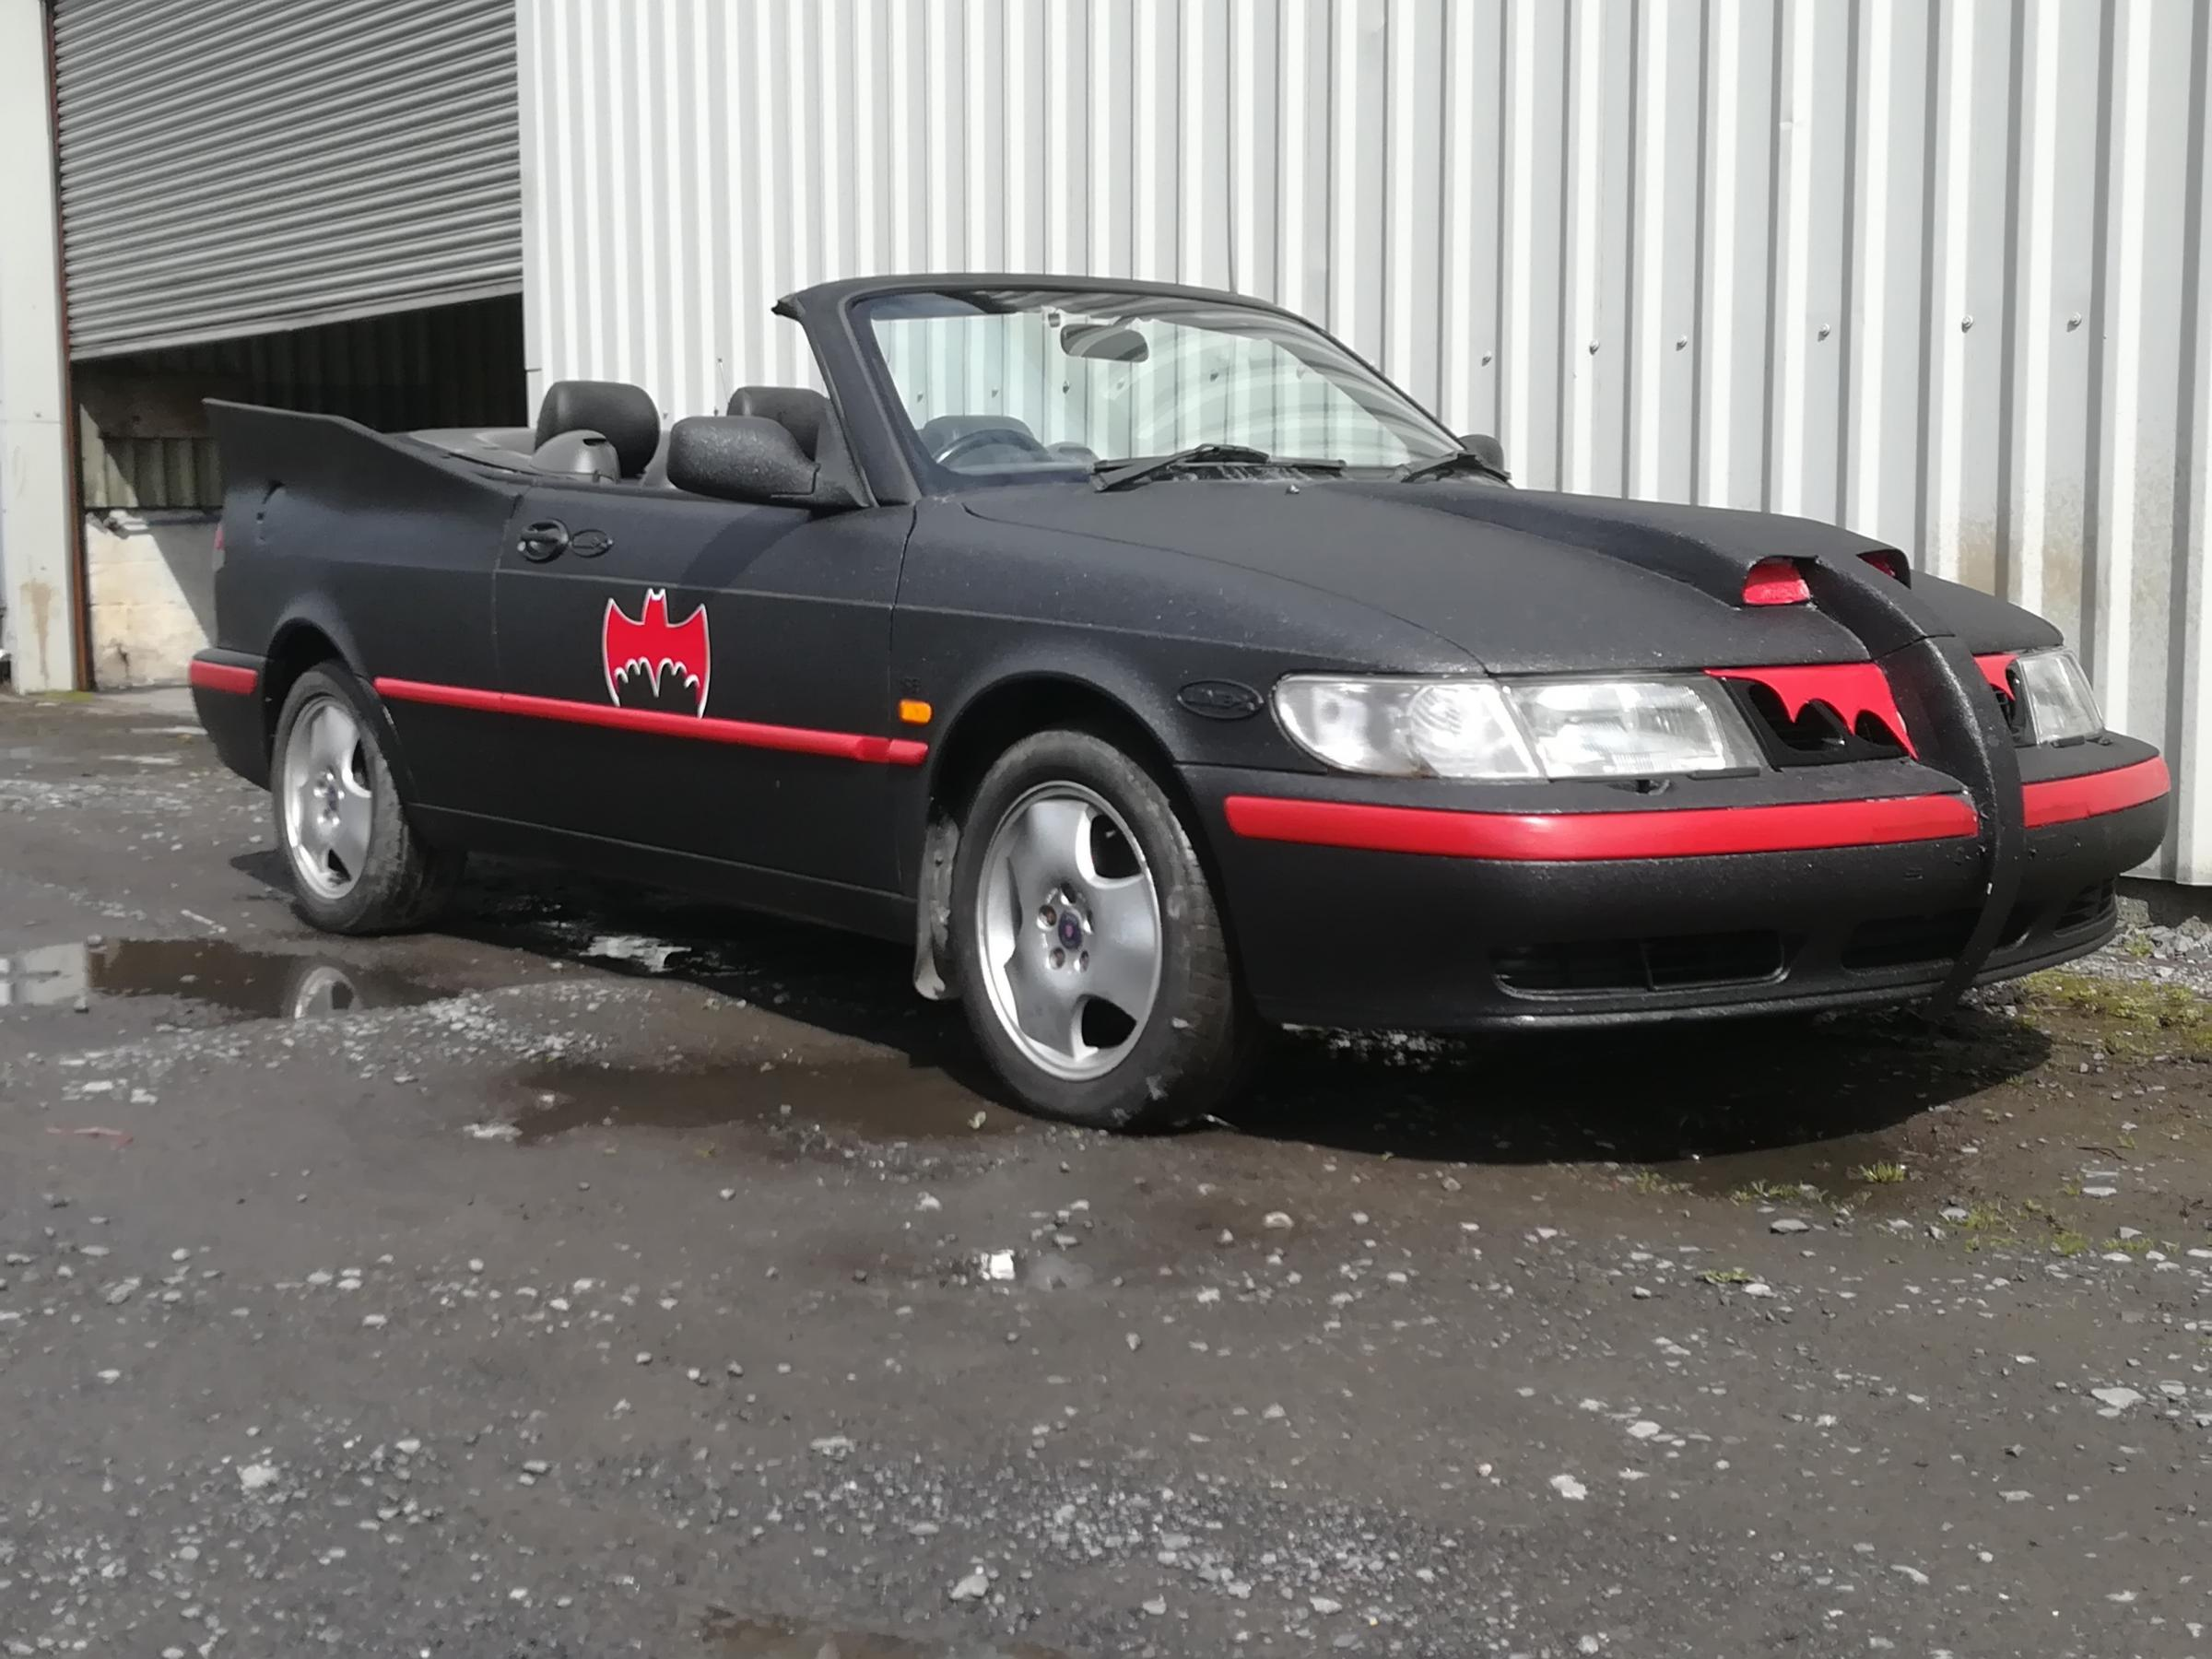 The pair converted a banger into a batmobile for the trip to Benidorm